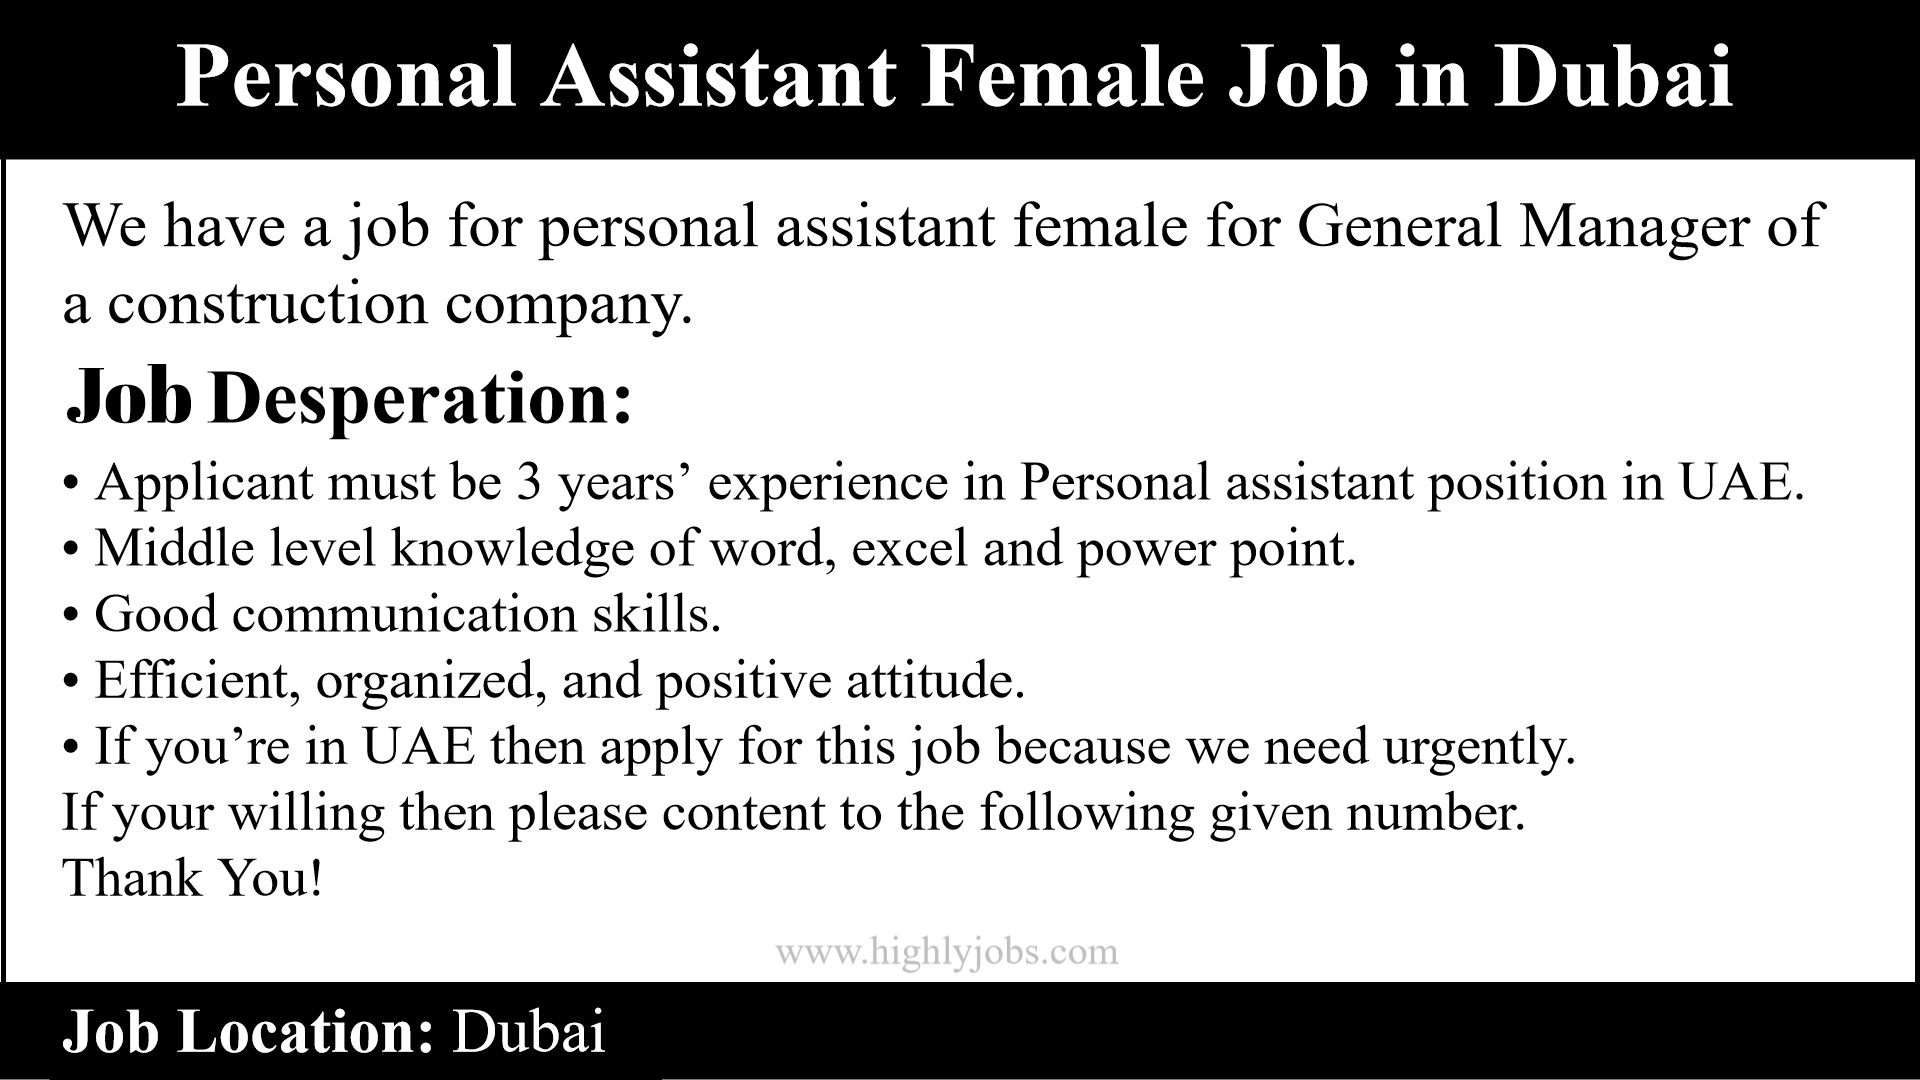 Personal Assistant Female Job in Dubai | Highlyjobs